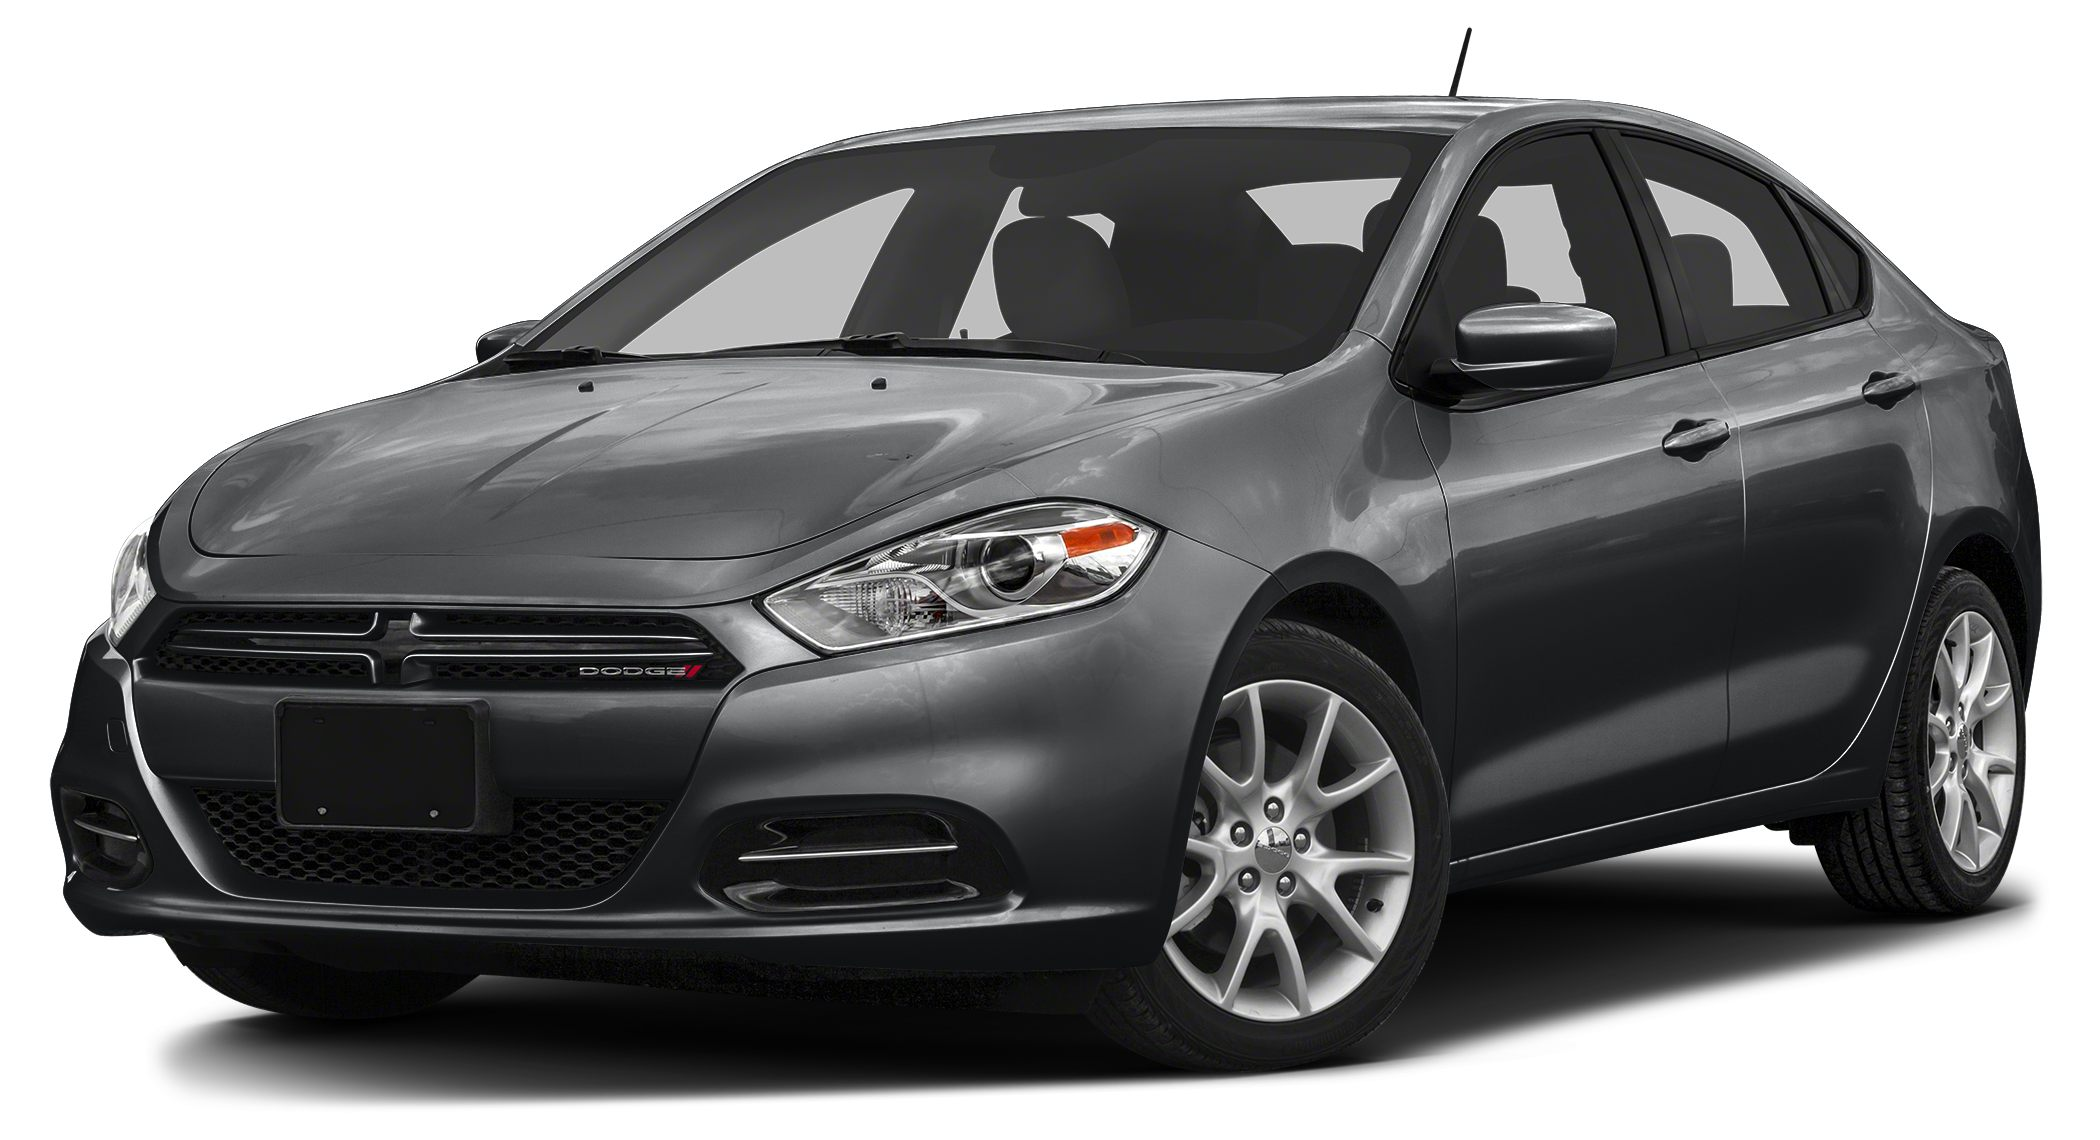 2015 Dodge Dart SXT Traction control keeps you from slip sliding away Take charge of the winding